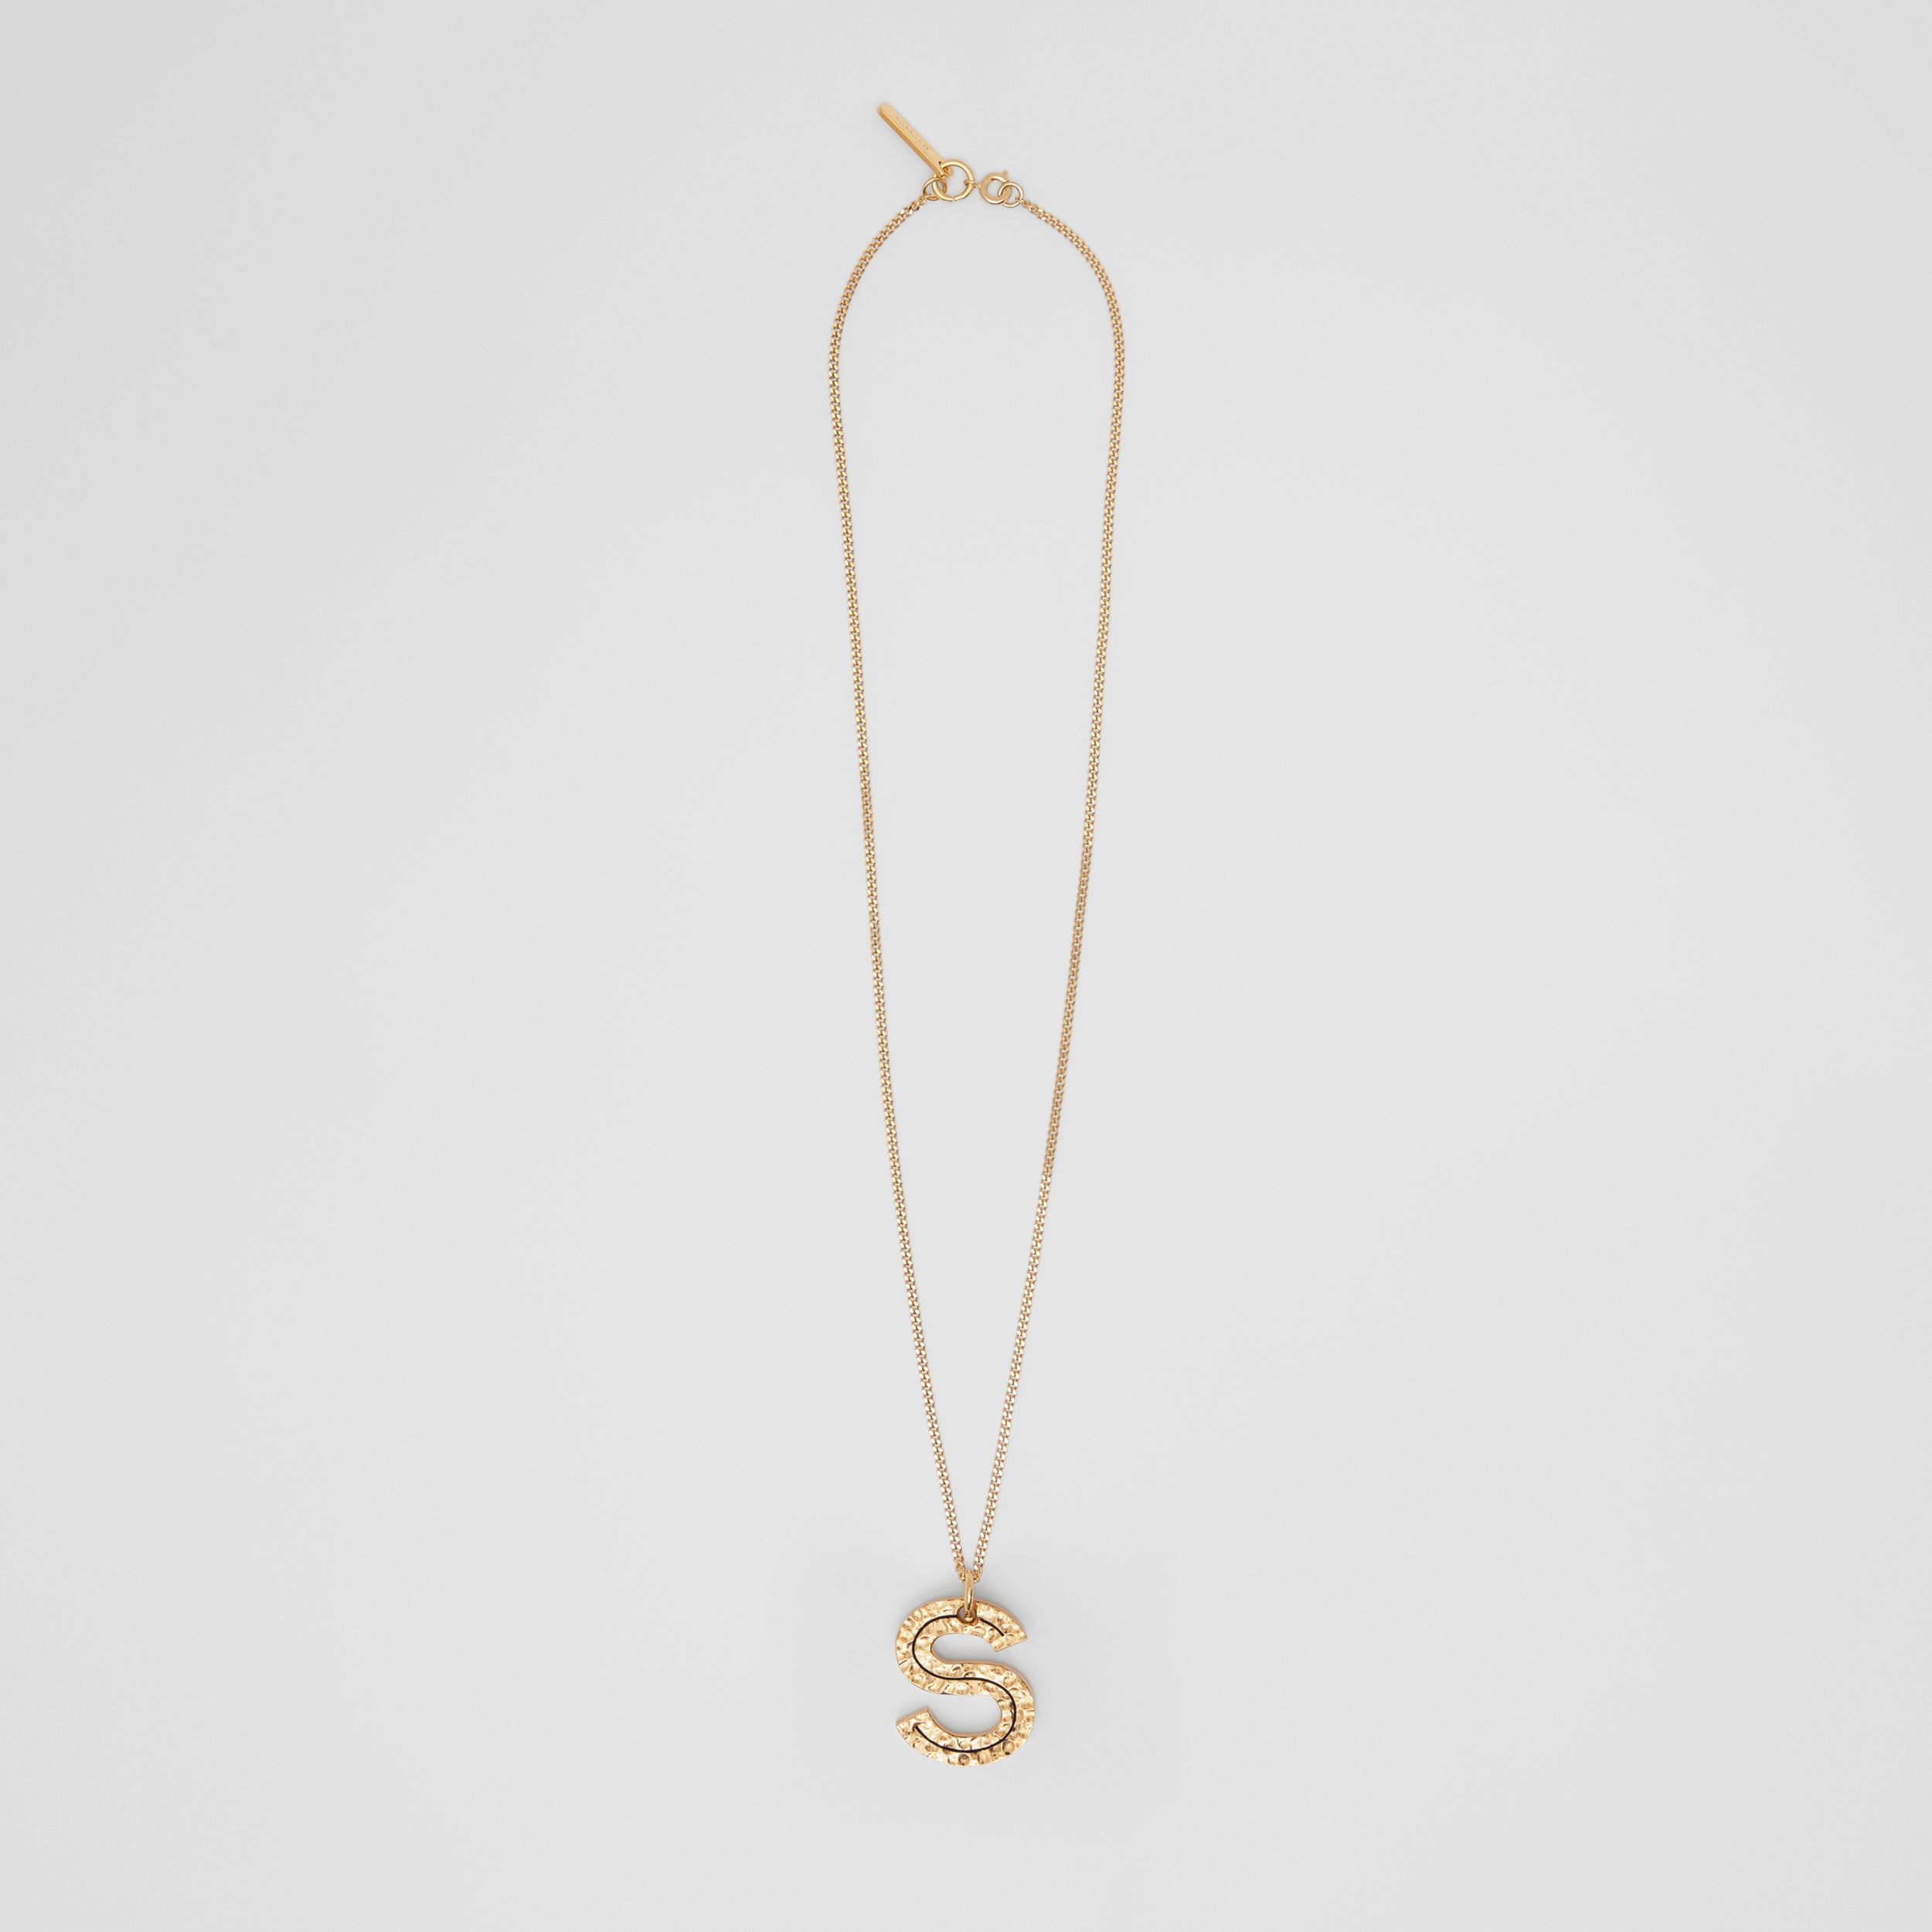 'S' Alphabet Charm Gold-plated Necklace in Light - Women | Burberry - 1